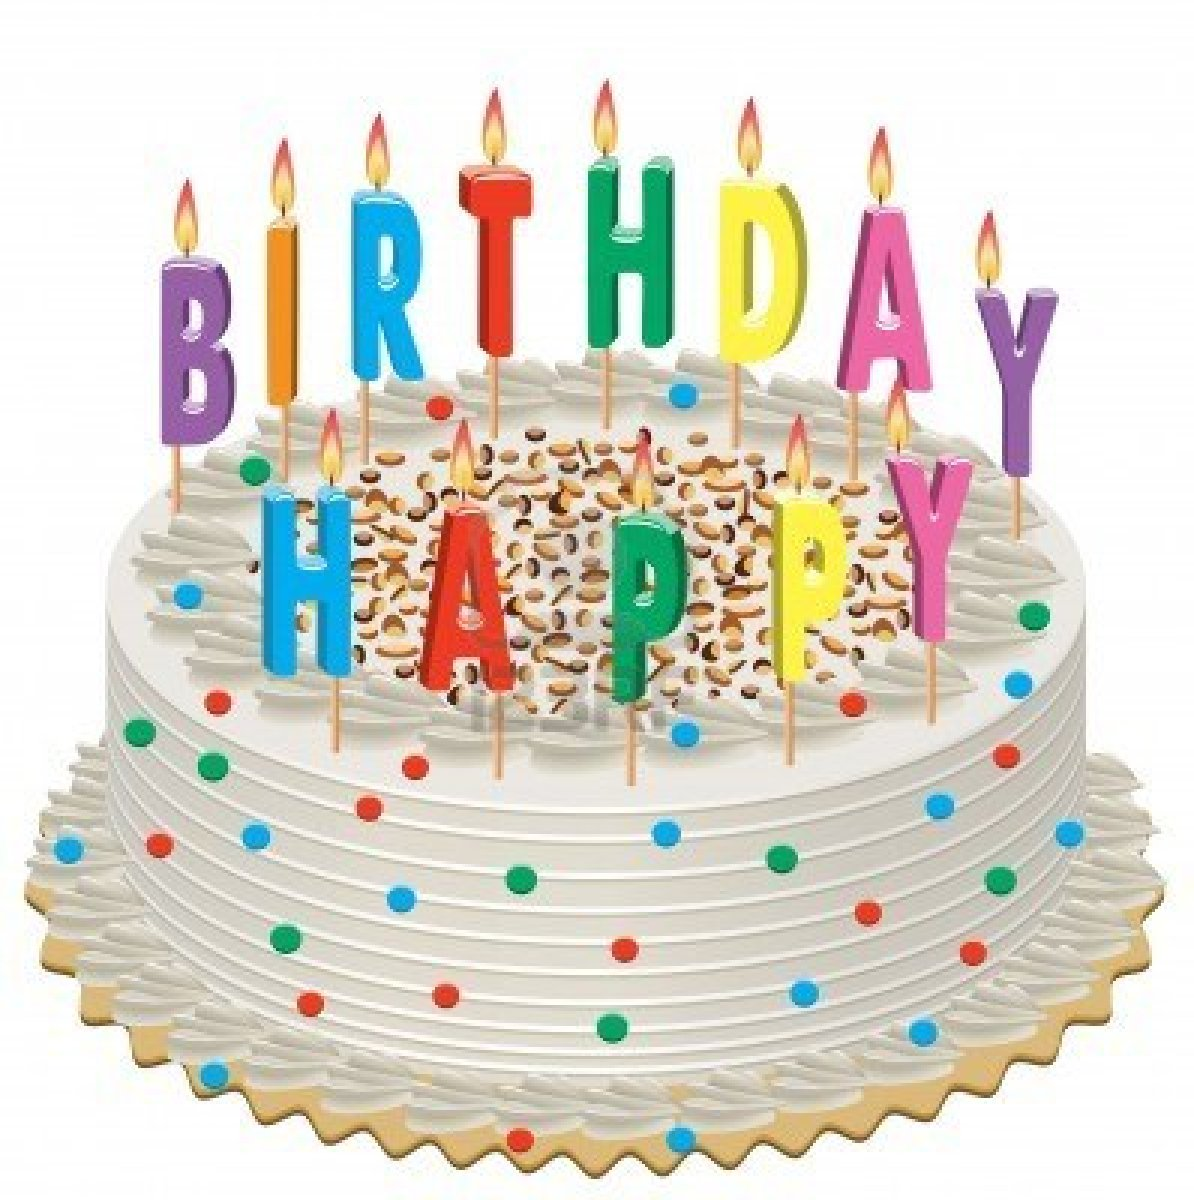 Lummy New As Well As Monday Monday You Who Are Celebratinga Happy Birthday To I Am Alice Happy Birthday Alice Gif Happy Birthday Alice Cake A This Means Time To Wish All houzz-03 Happy Birthday Alice